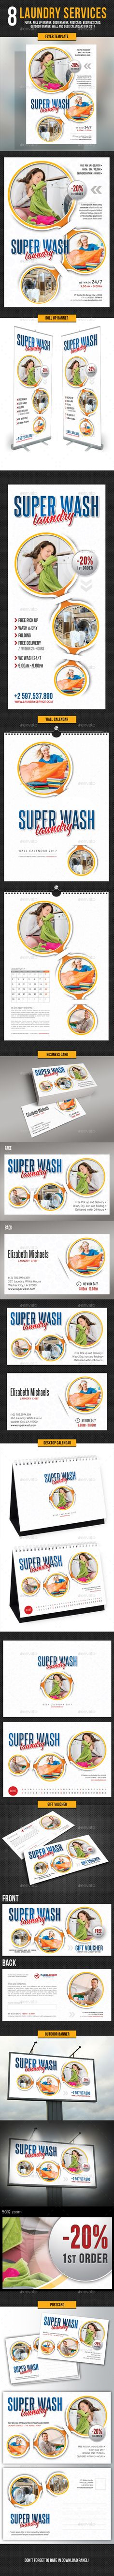 Dry Cleaners or Laundry Business Card | Pinterest | Laundry business ...